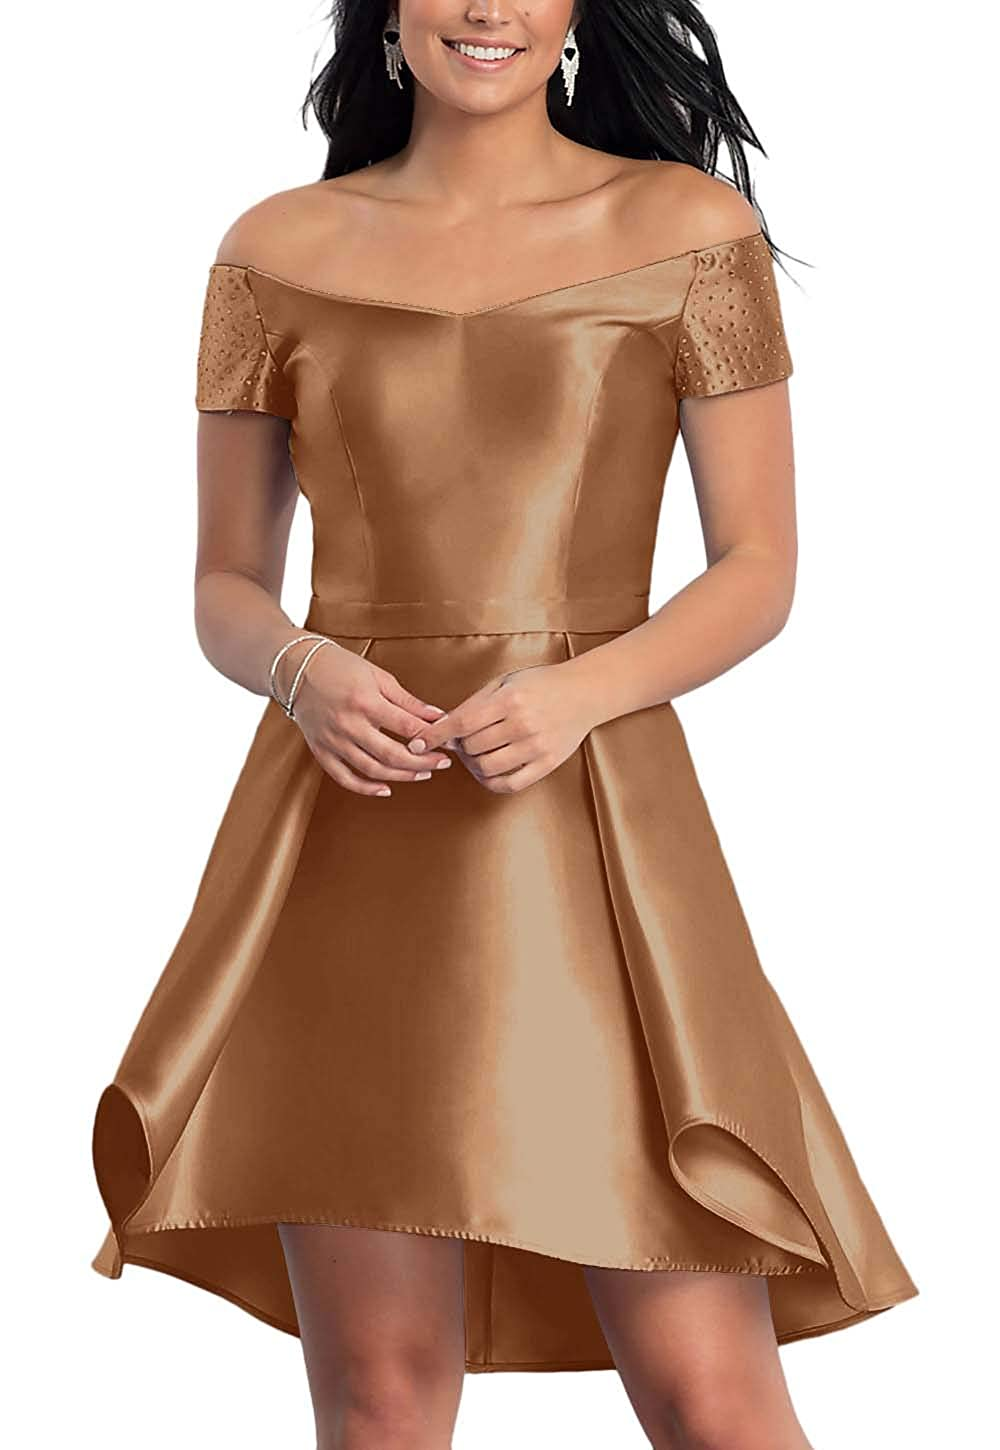 Light Brown FeiYueXinXing Satin HighLow Short OffTheShoulder Homecoming Dress for Juniors with Pockets